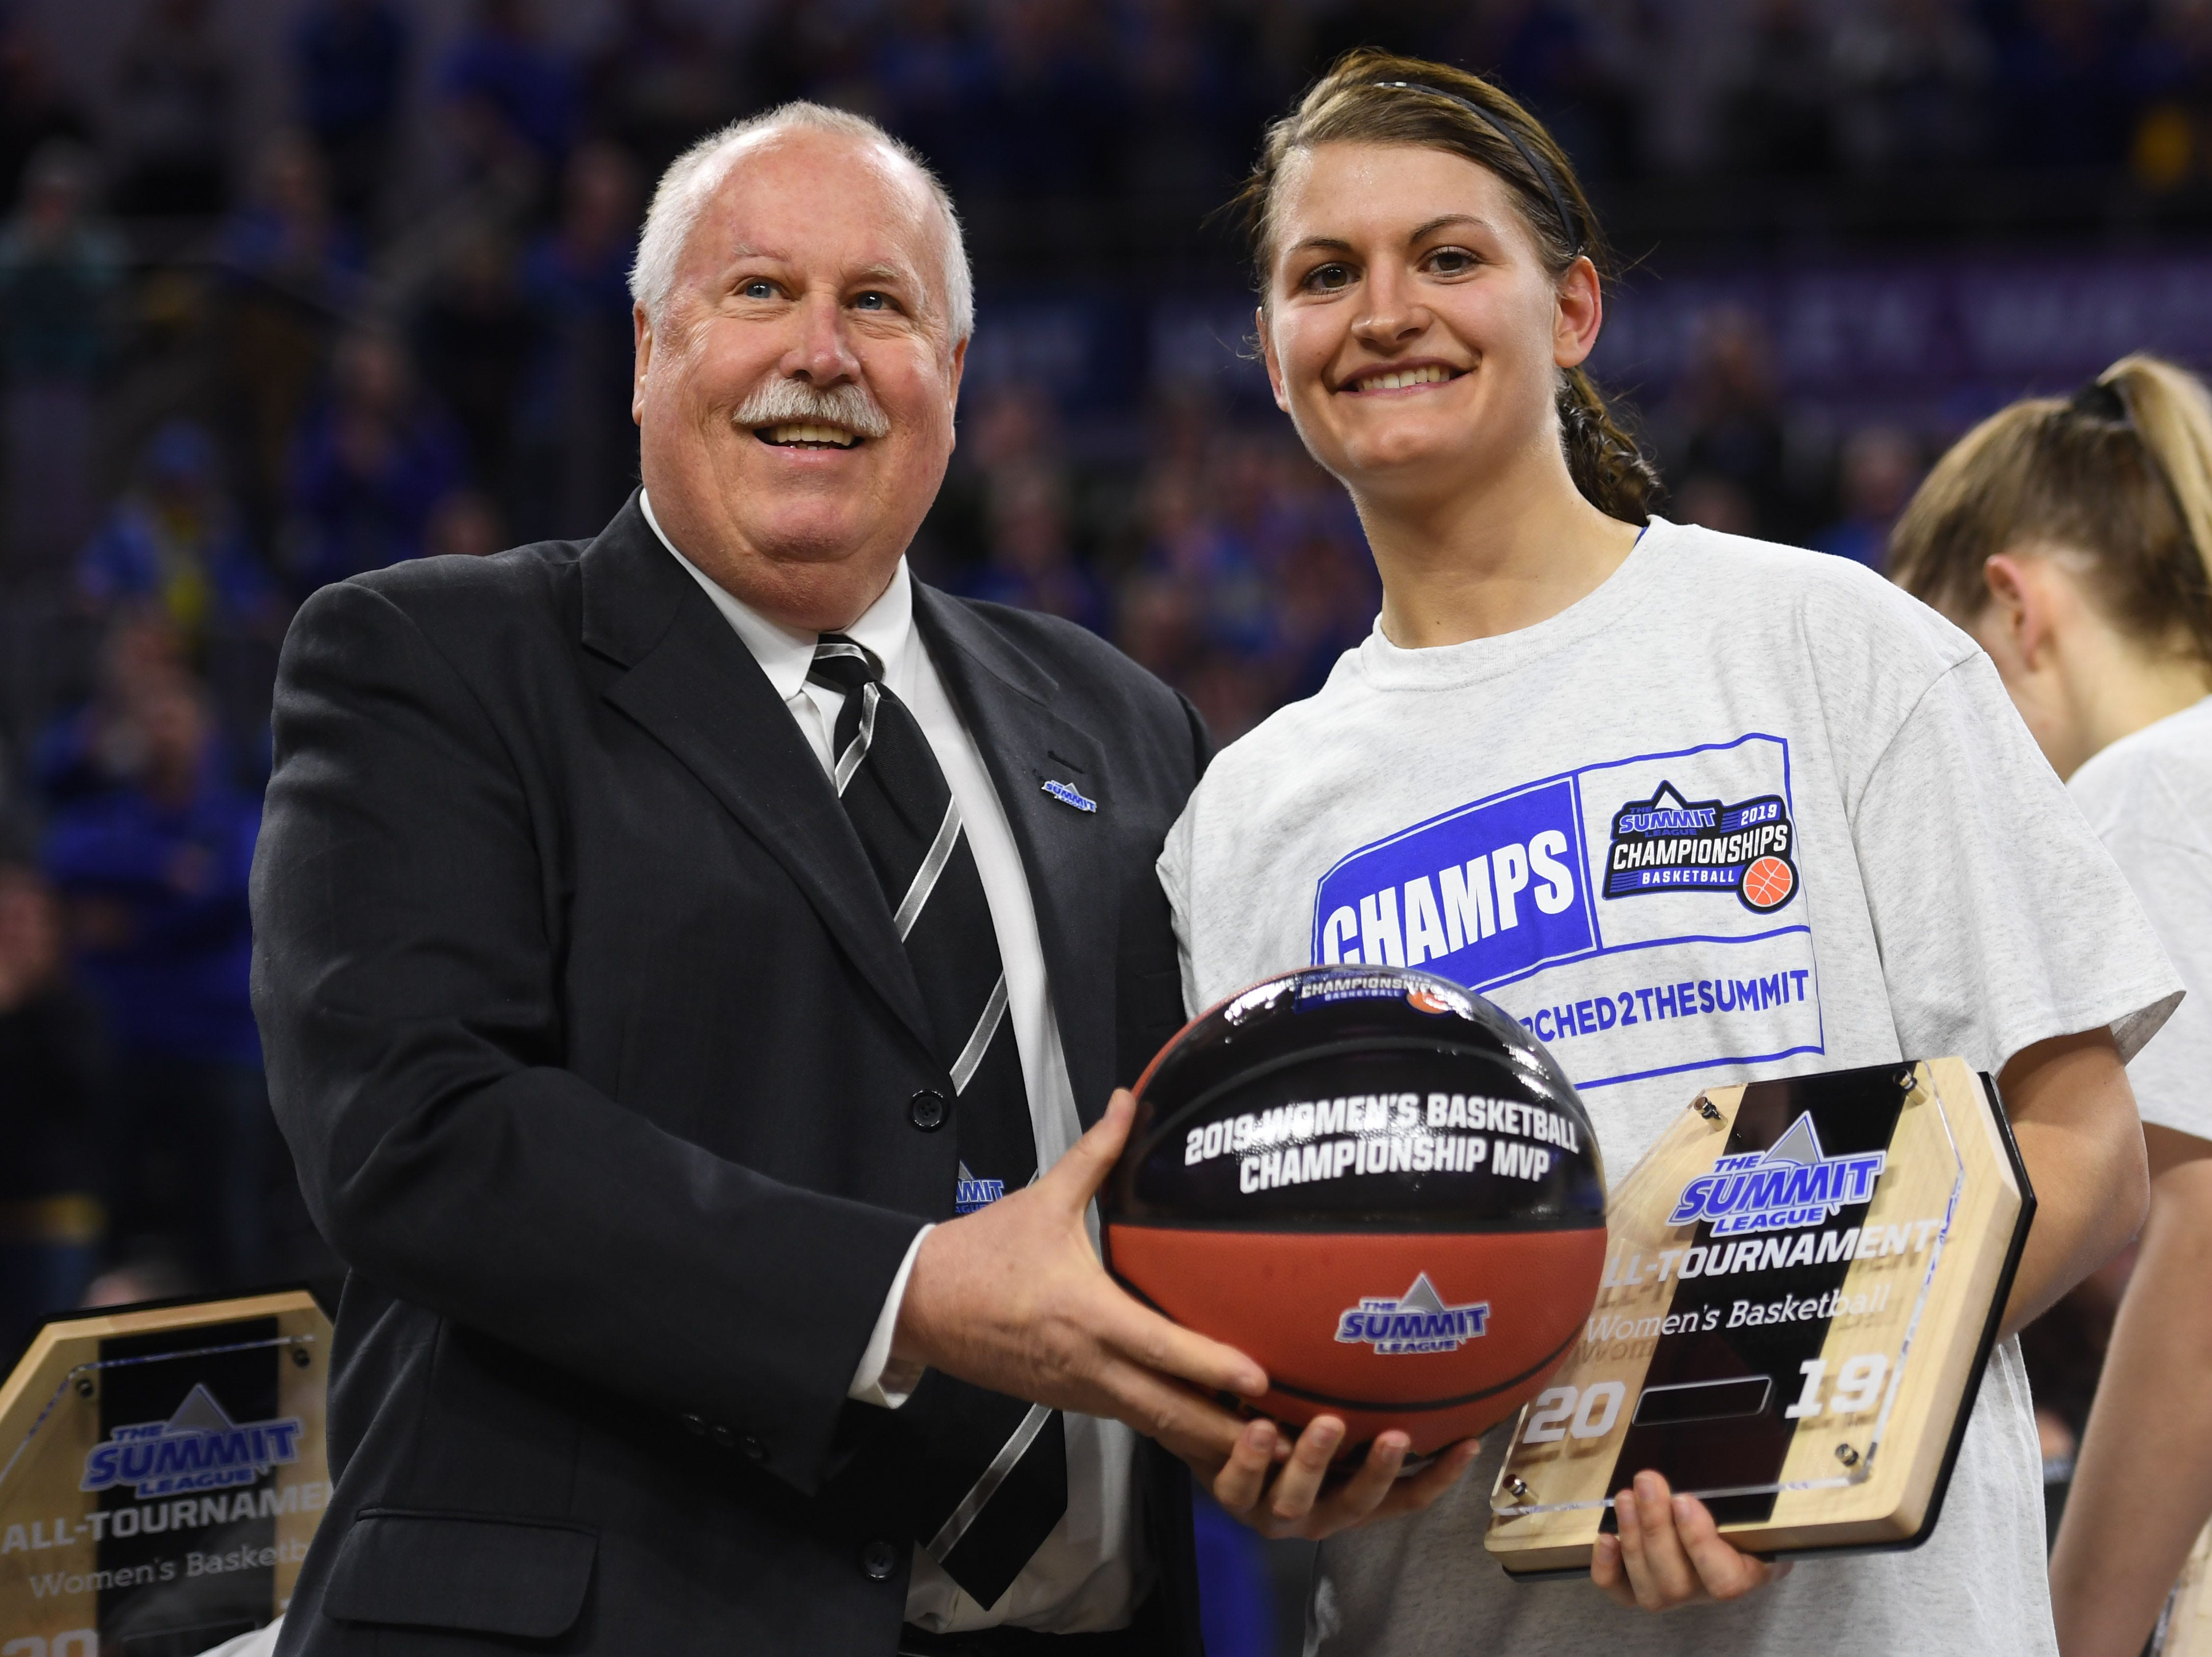 SDSU's Macy Miller receives the 2019 Women's Basketball Championship MVP basketball after the win against USD Tuesday, March 12, in the Summit League women's championship at the Denny Sanford Premier Center in Sioux Falls.